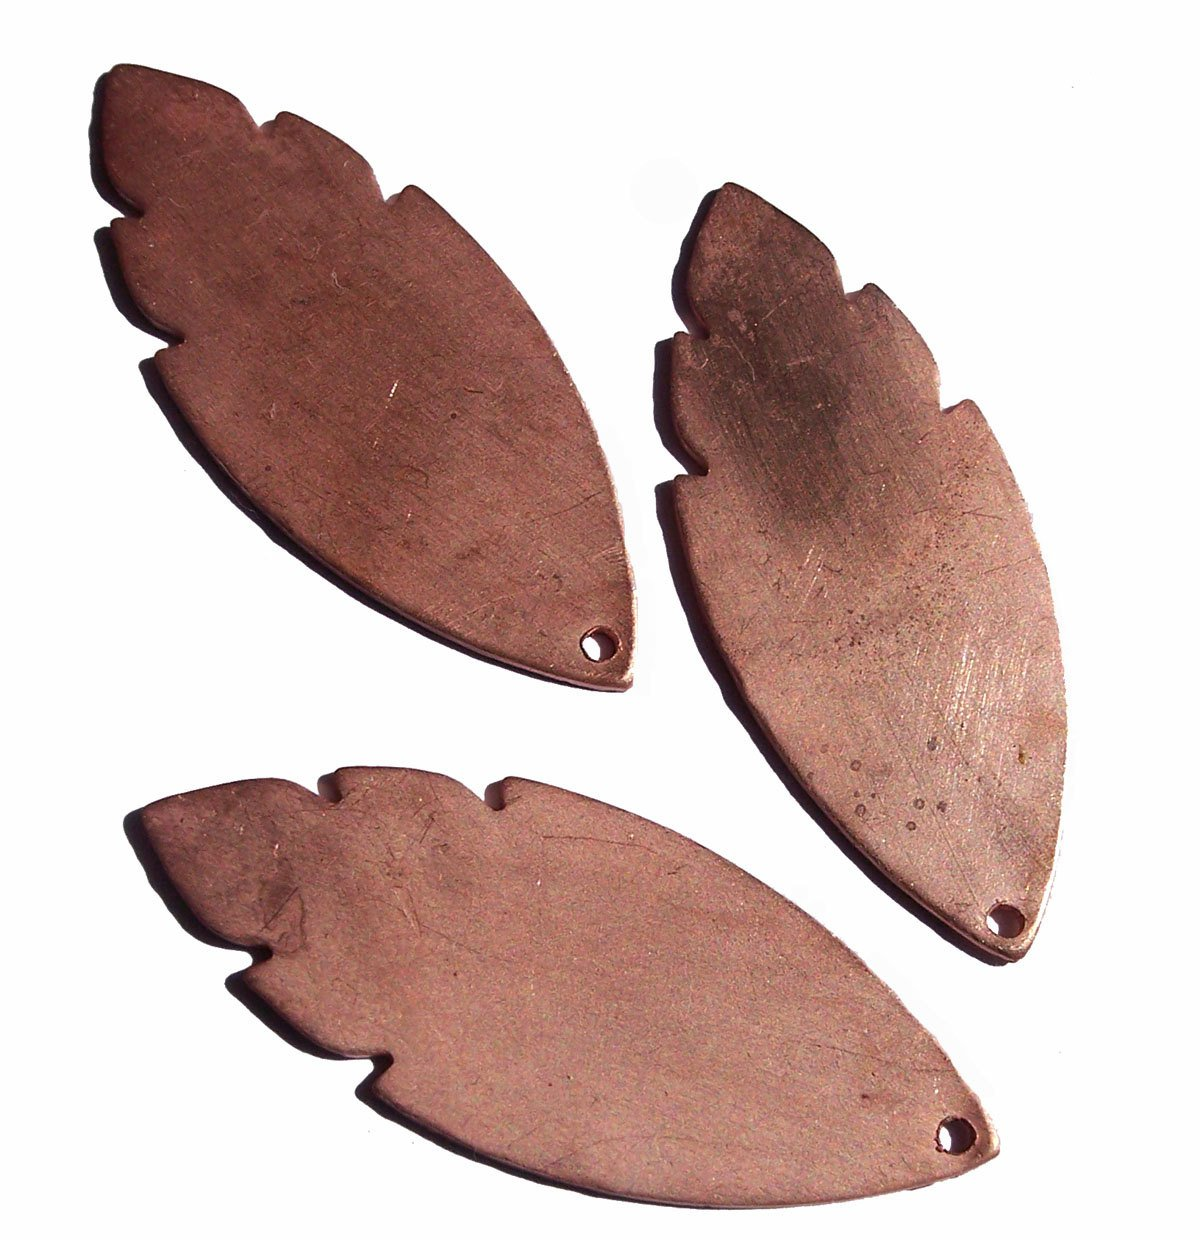 Antique Hammered Leaf 47mm x 20mm Blank Cutout for Enameling Stamping Texturing Blanks Variety of Metals